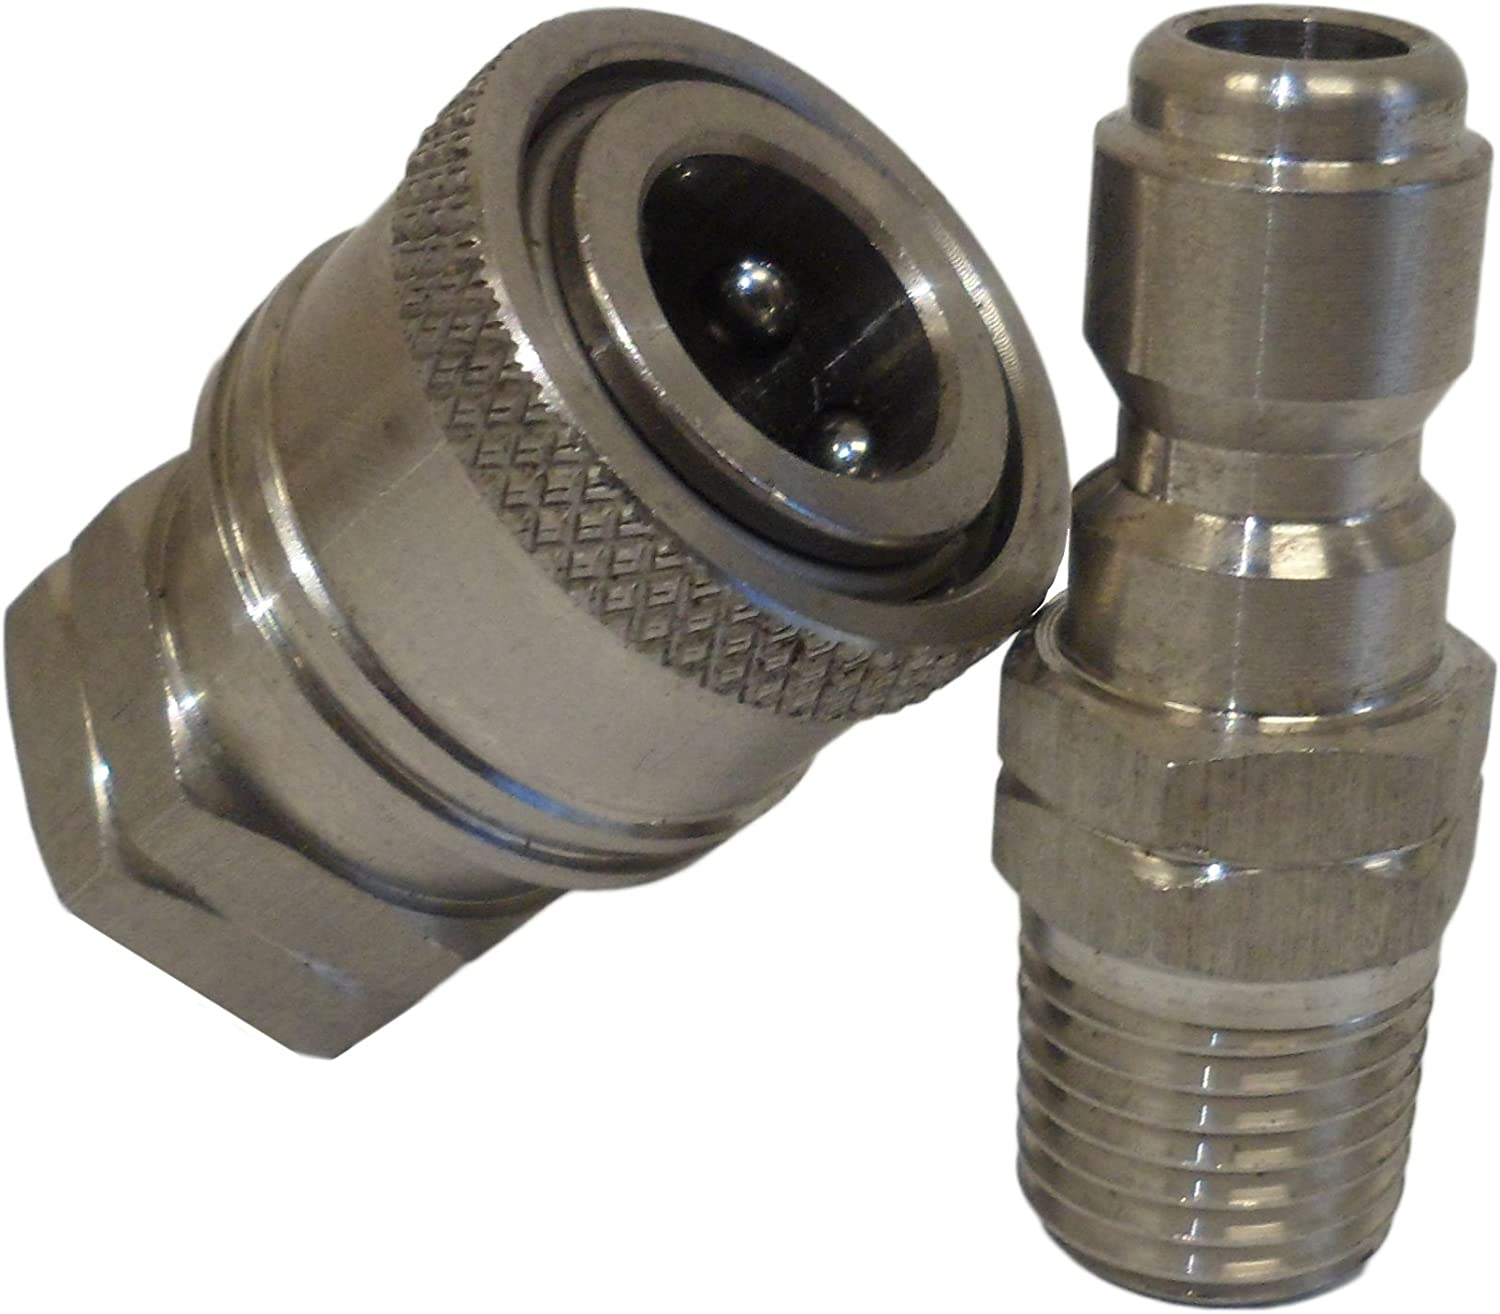 Ultimate Washer UW16-PWCA94 1/4-Inch High Pressure Quick Disconnect Adapter Set, Replaces Apache 98441022, 5000 PSI Rating